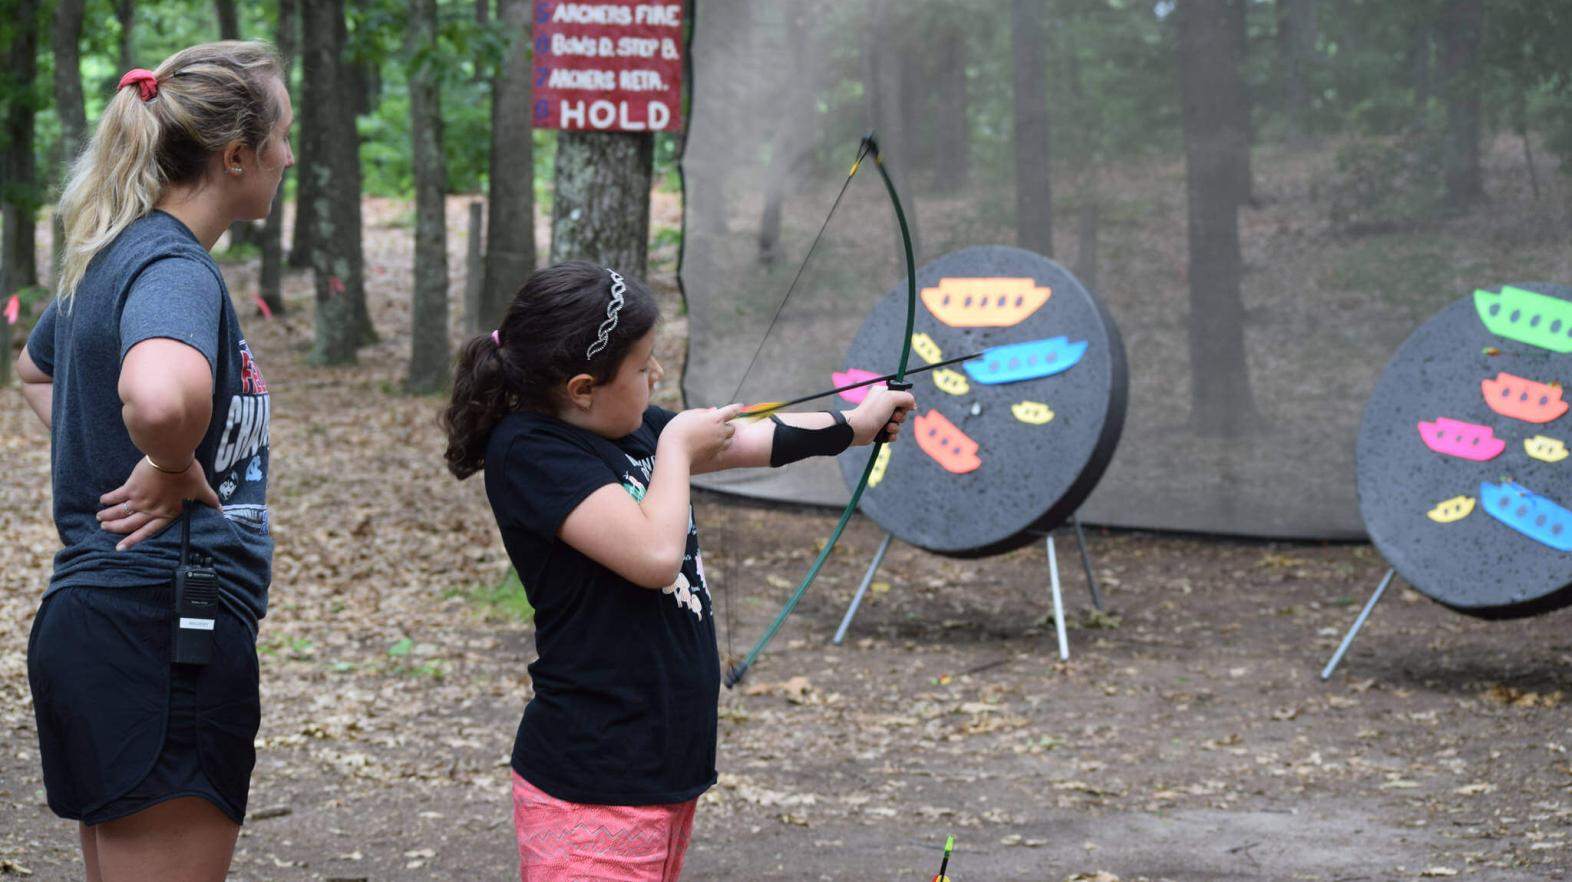 Camper shoots a bow and arrow.